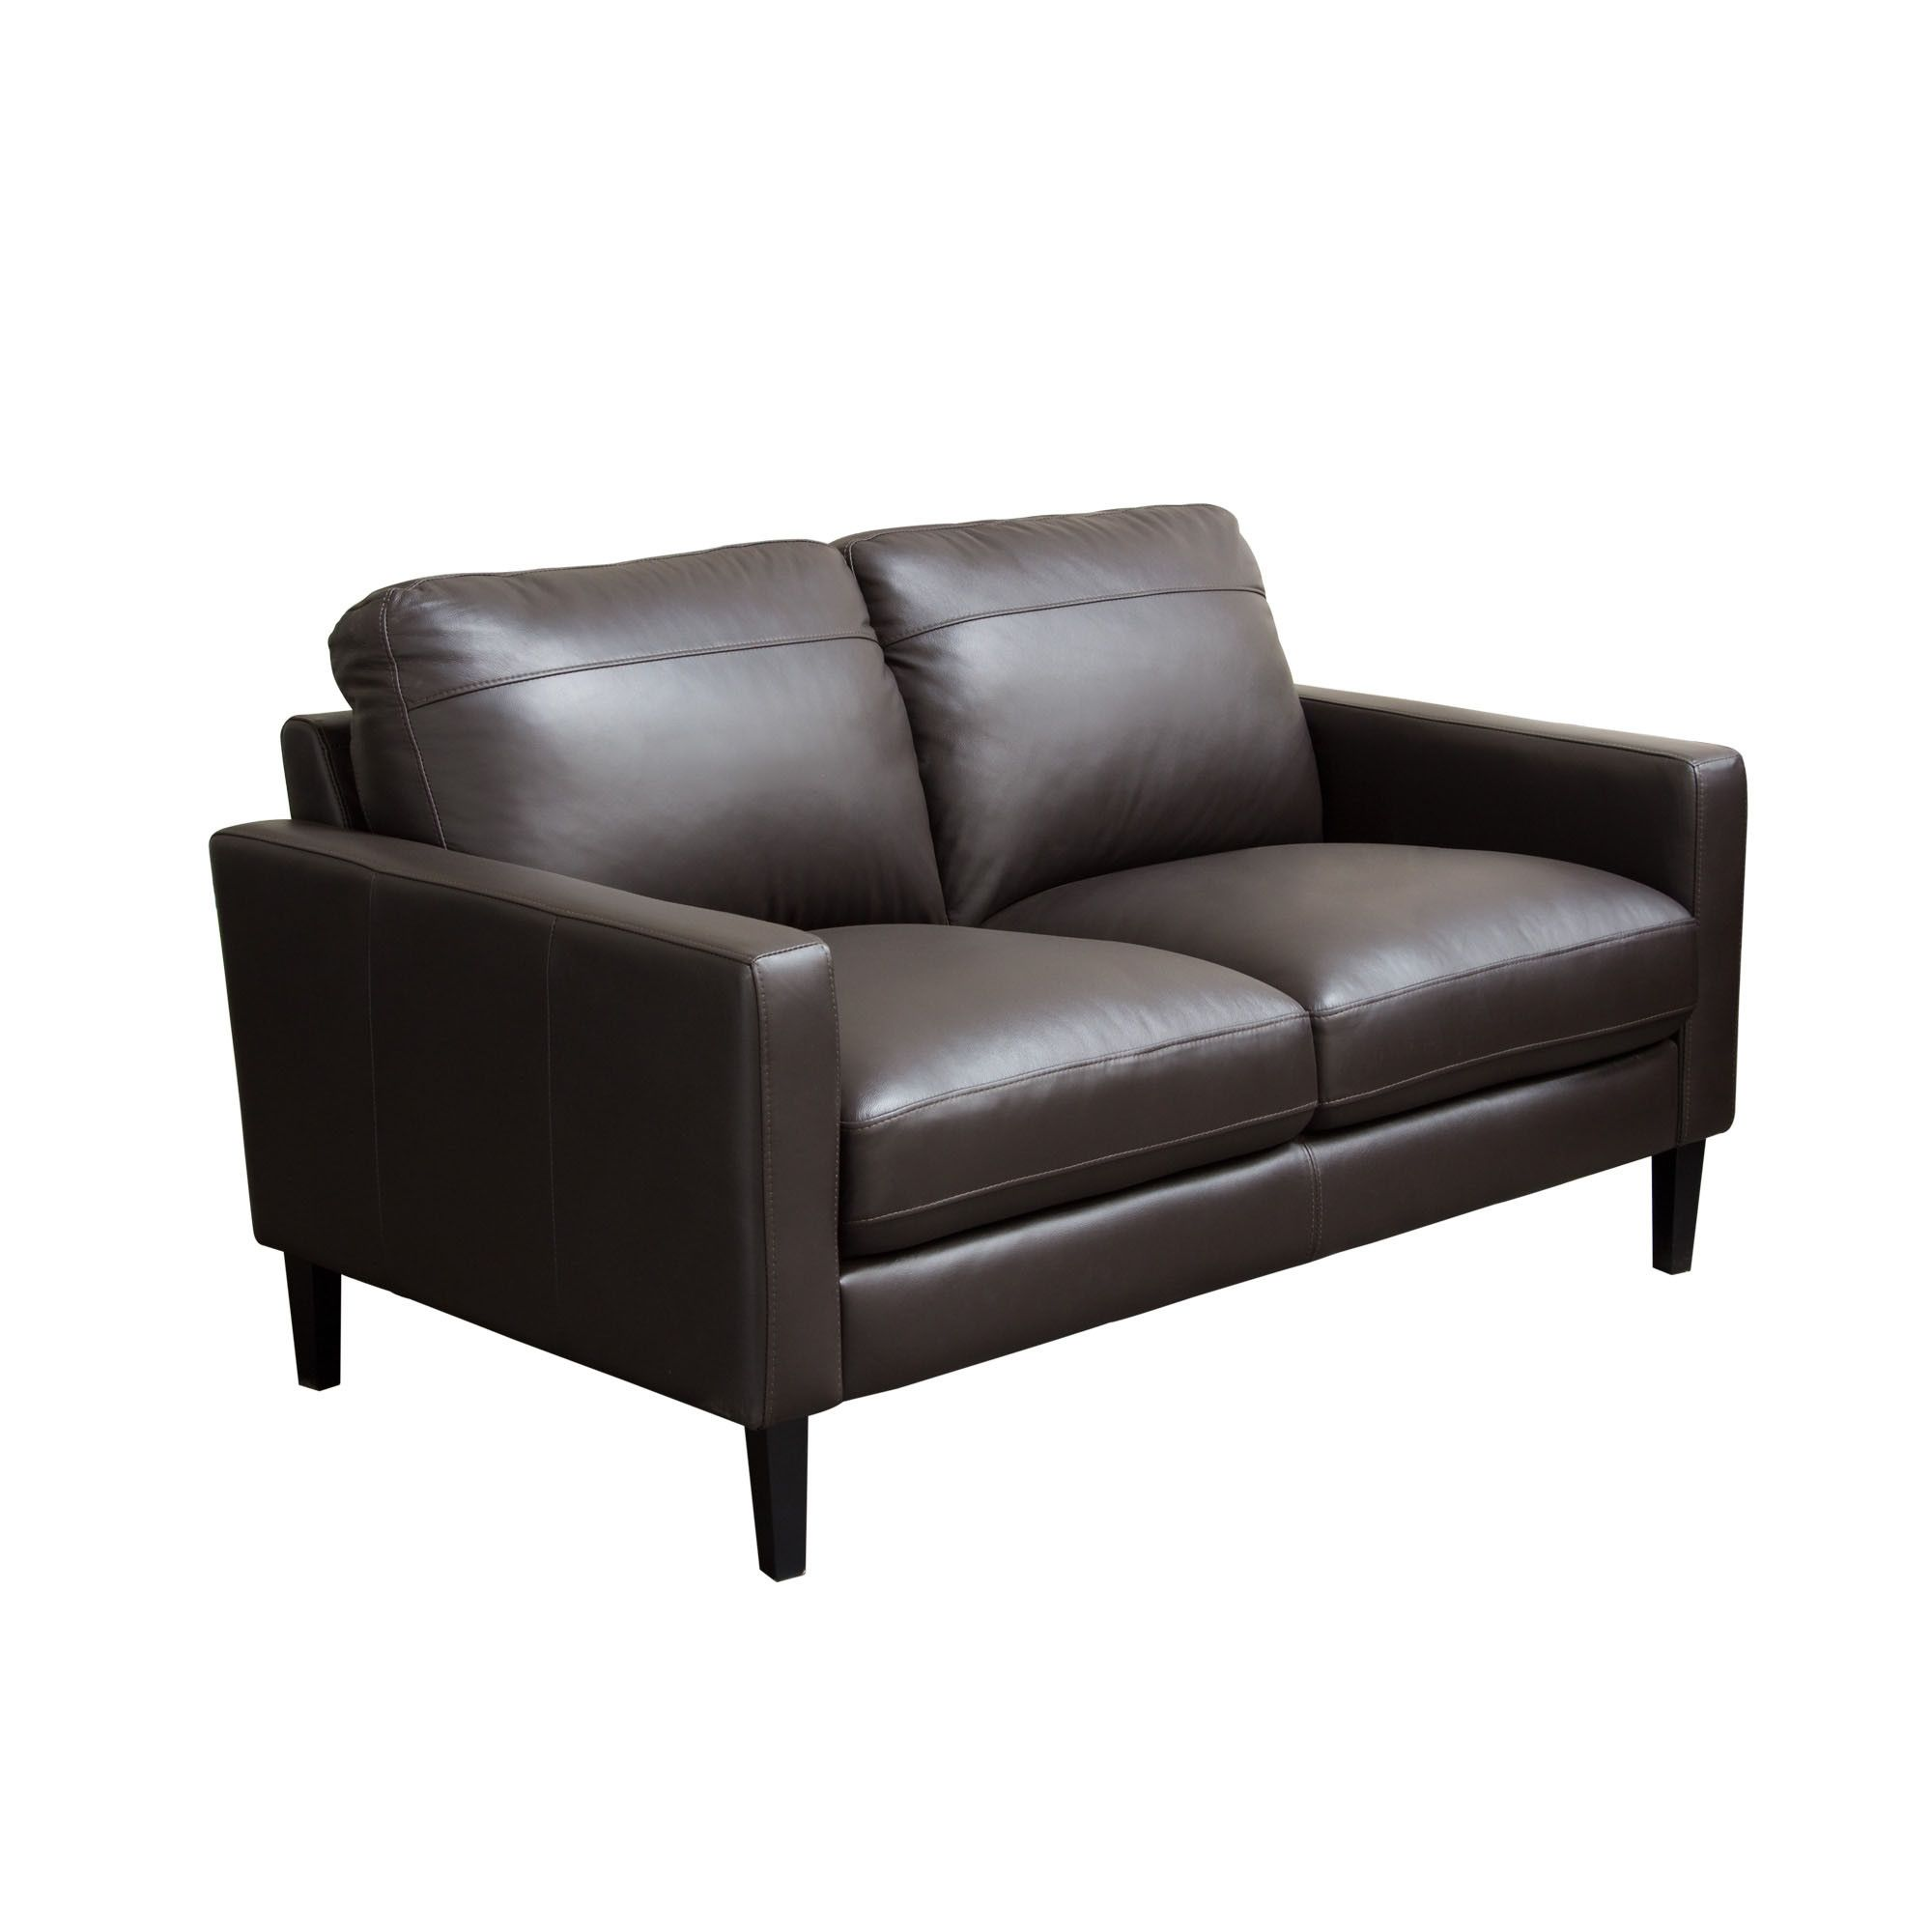 exquisite leather reclinersmodern loveseat on sectional sets modernher size cheap sofas sofa of me concept near salemodern diamond with and sale full photo modern